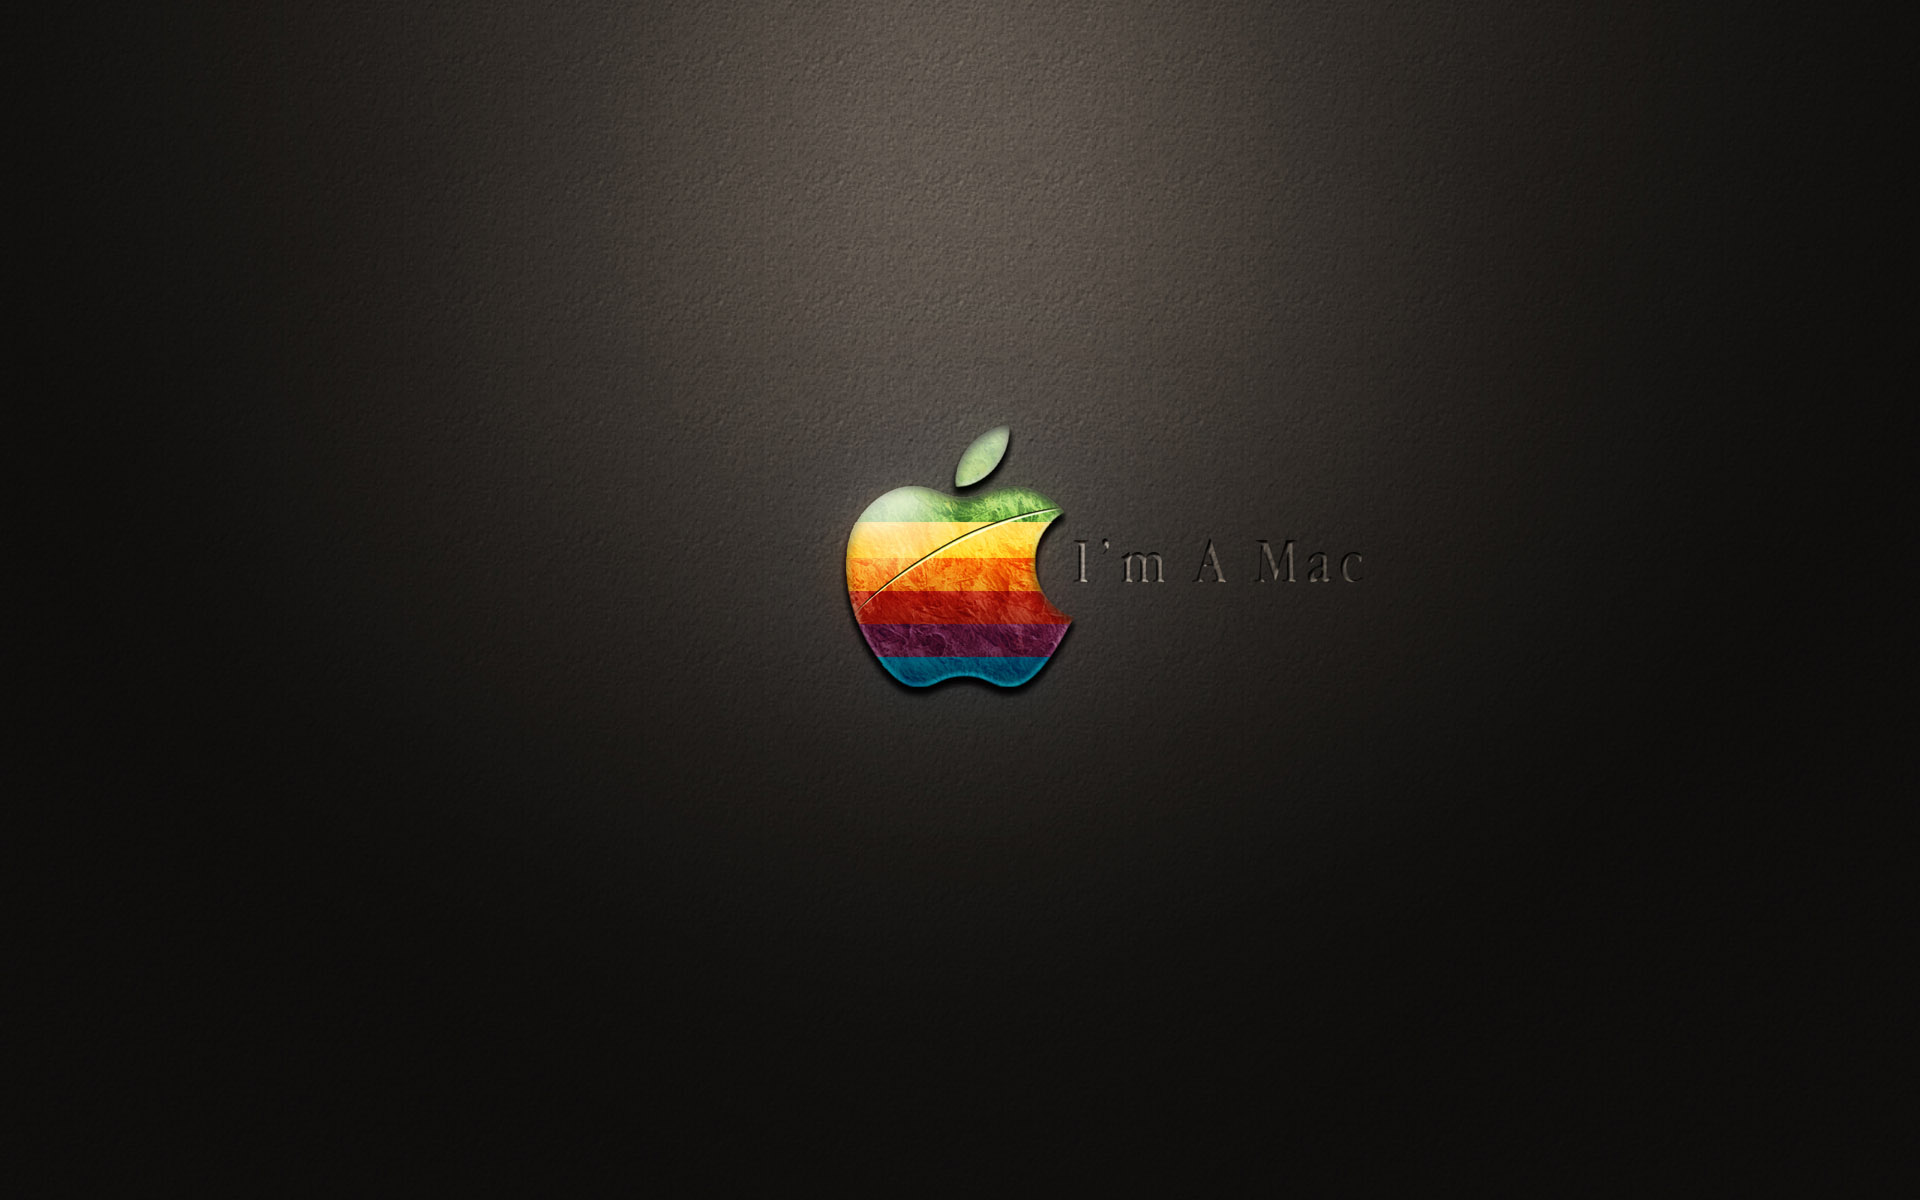 Apple wallpaper high definition 21193